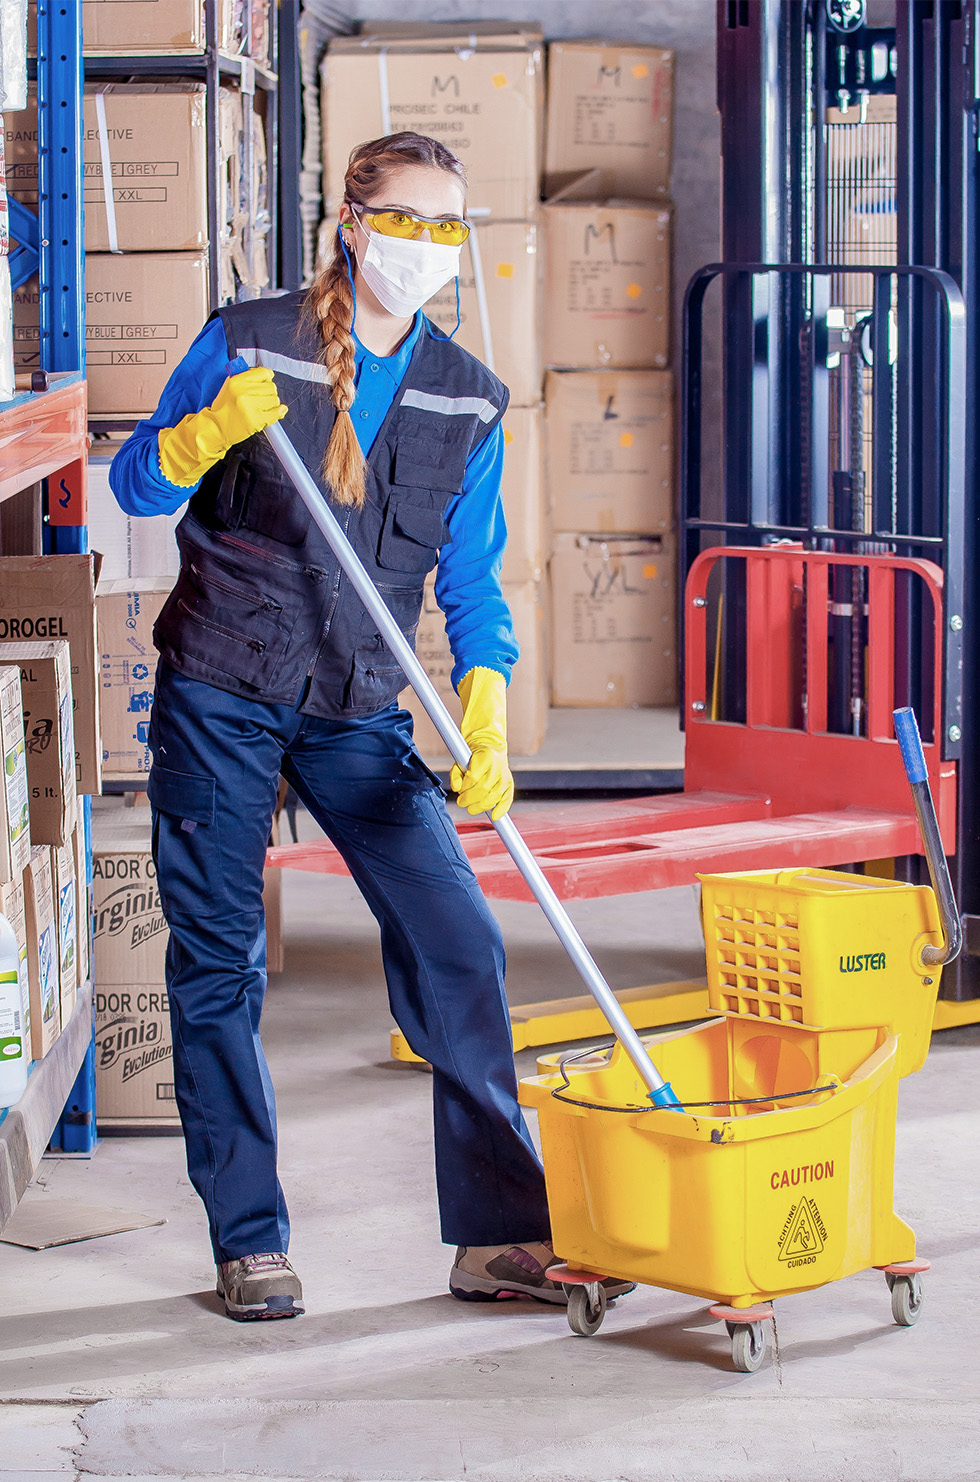 A woman employee cleaning